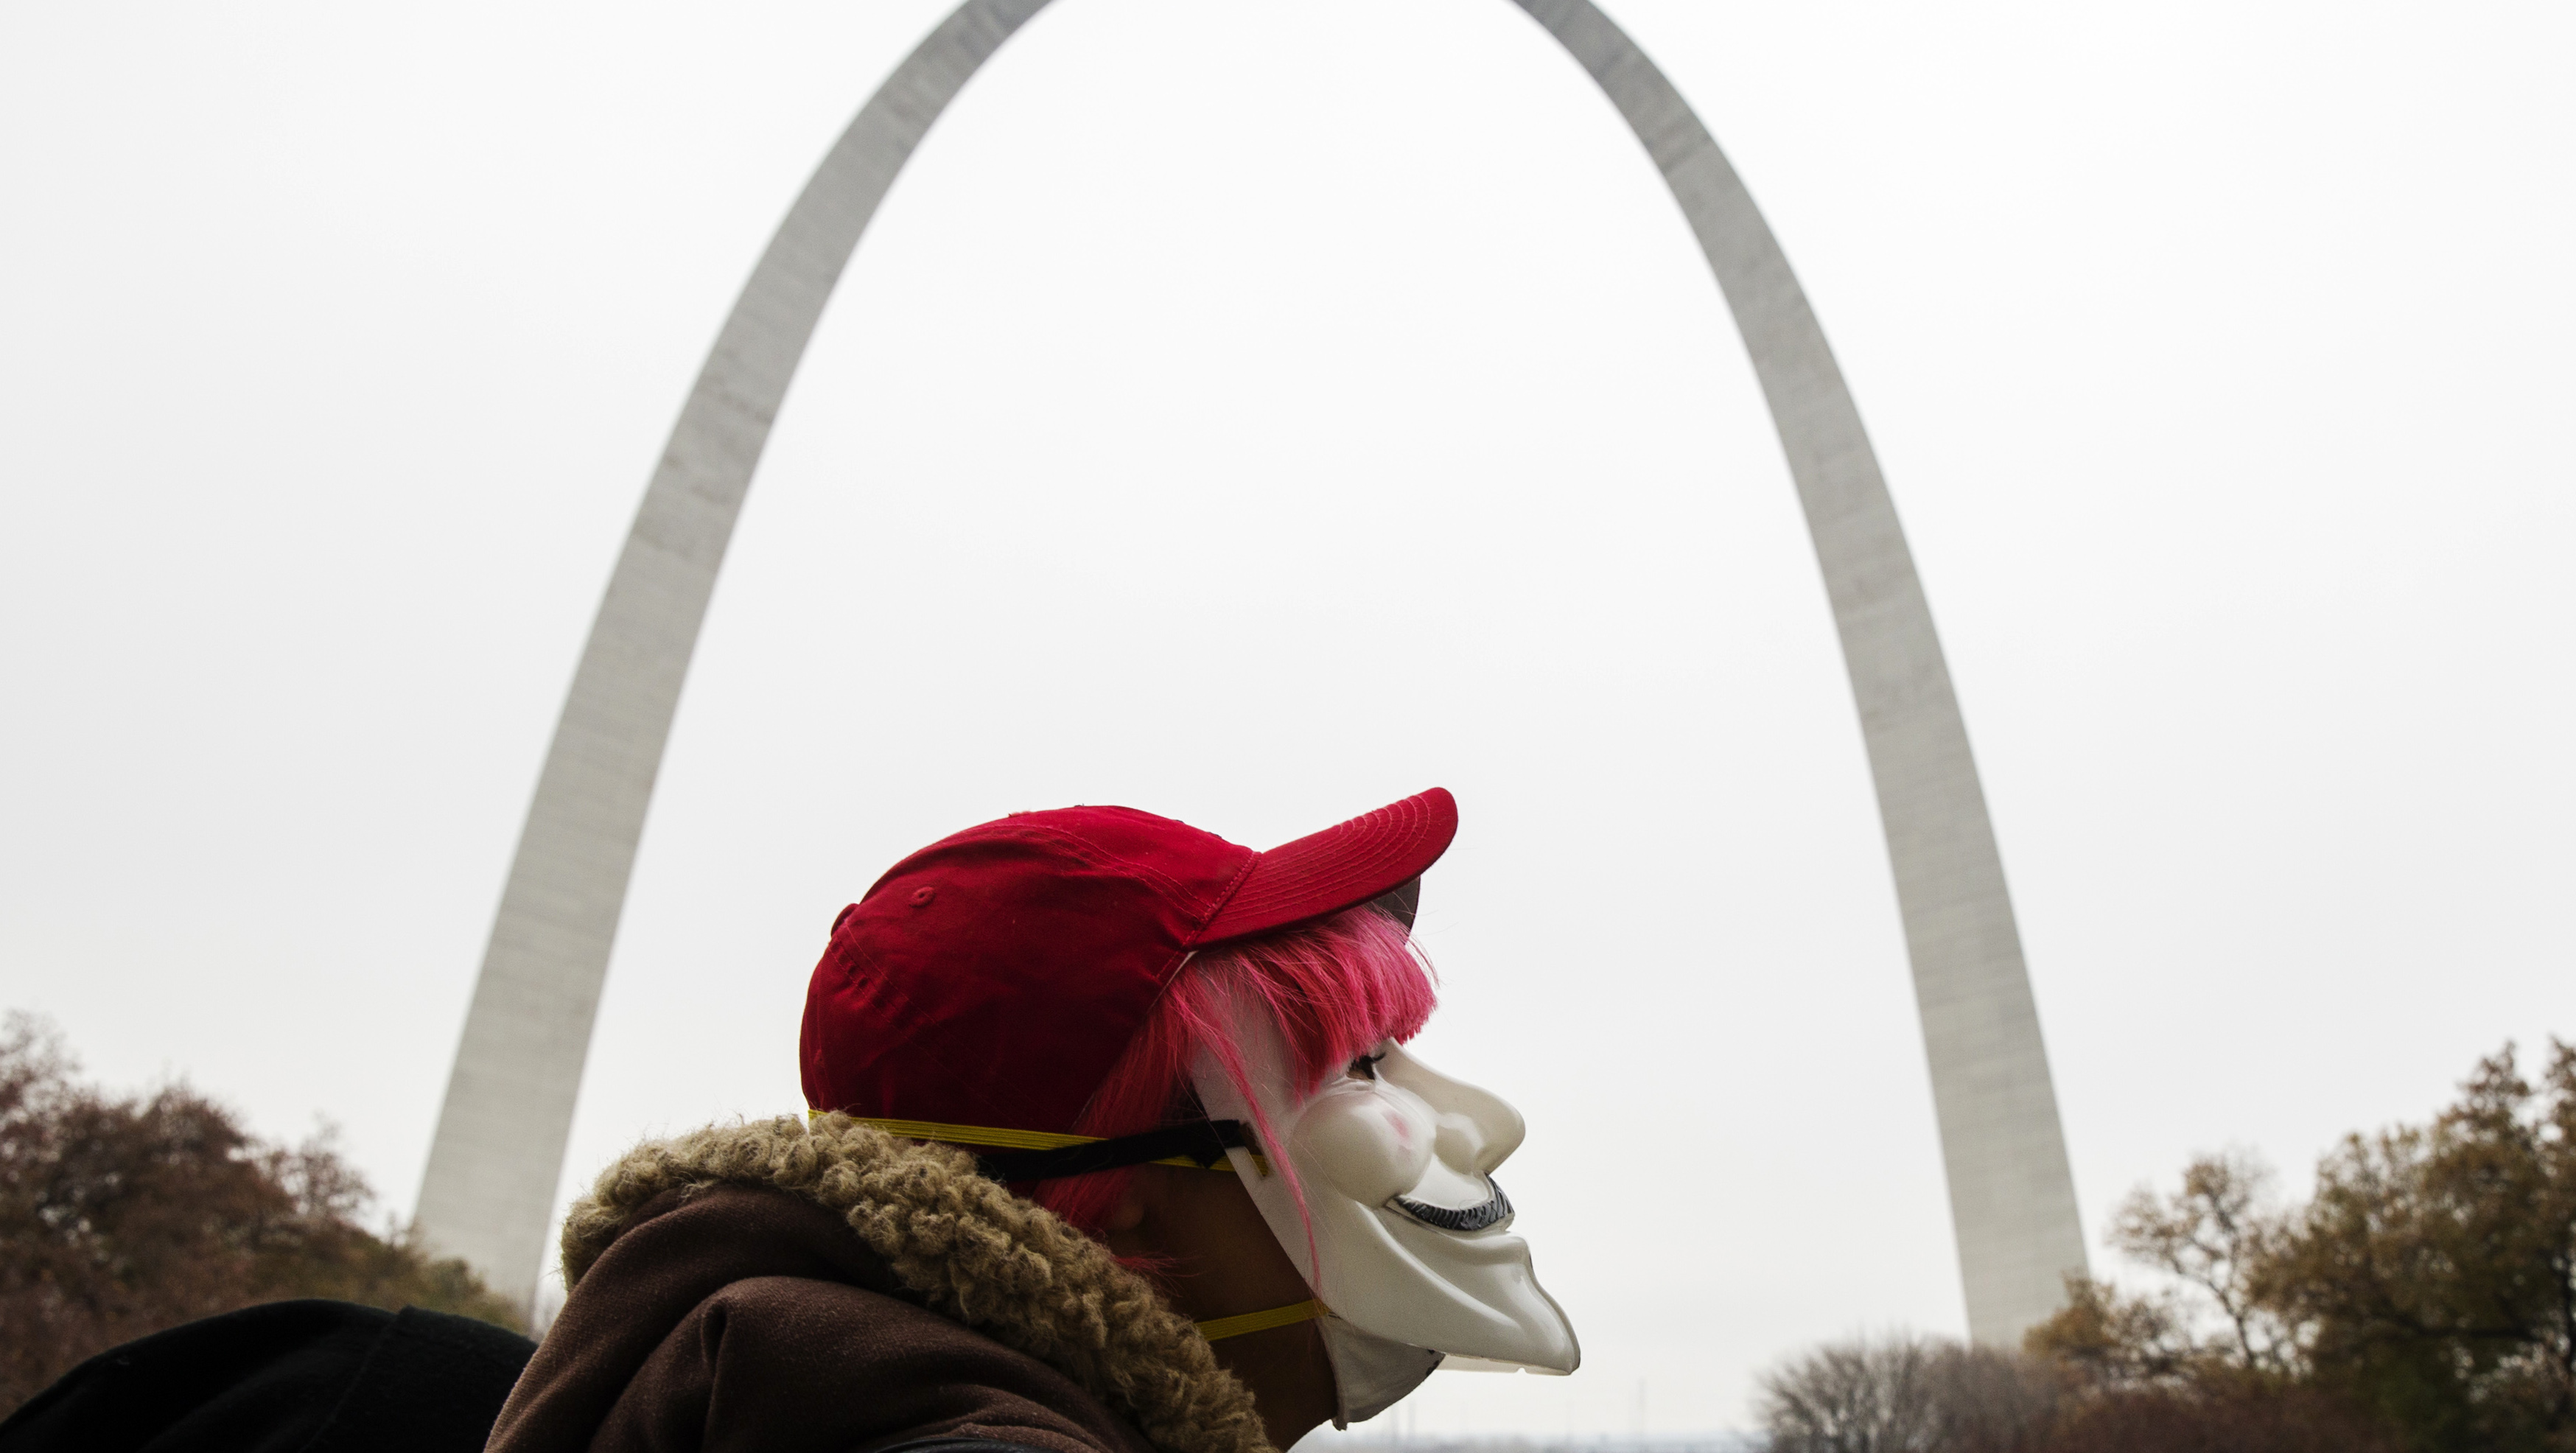 """A demonstrator takes part in a """"mock trial"""" of Darren Wilson as they protest a grand jury's decision not to indict Wilson for killing Michael Brown, in St. Louis"""